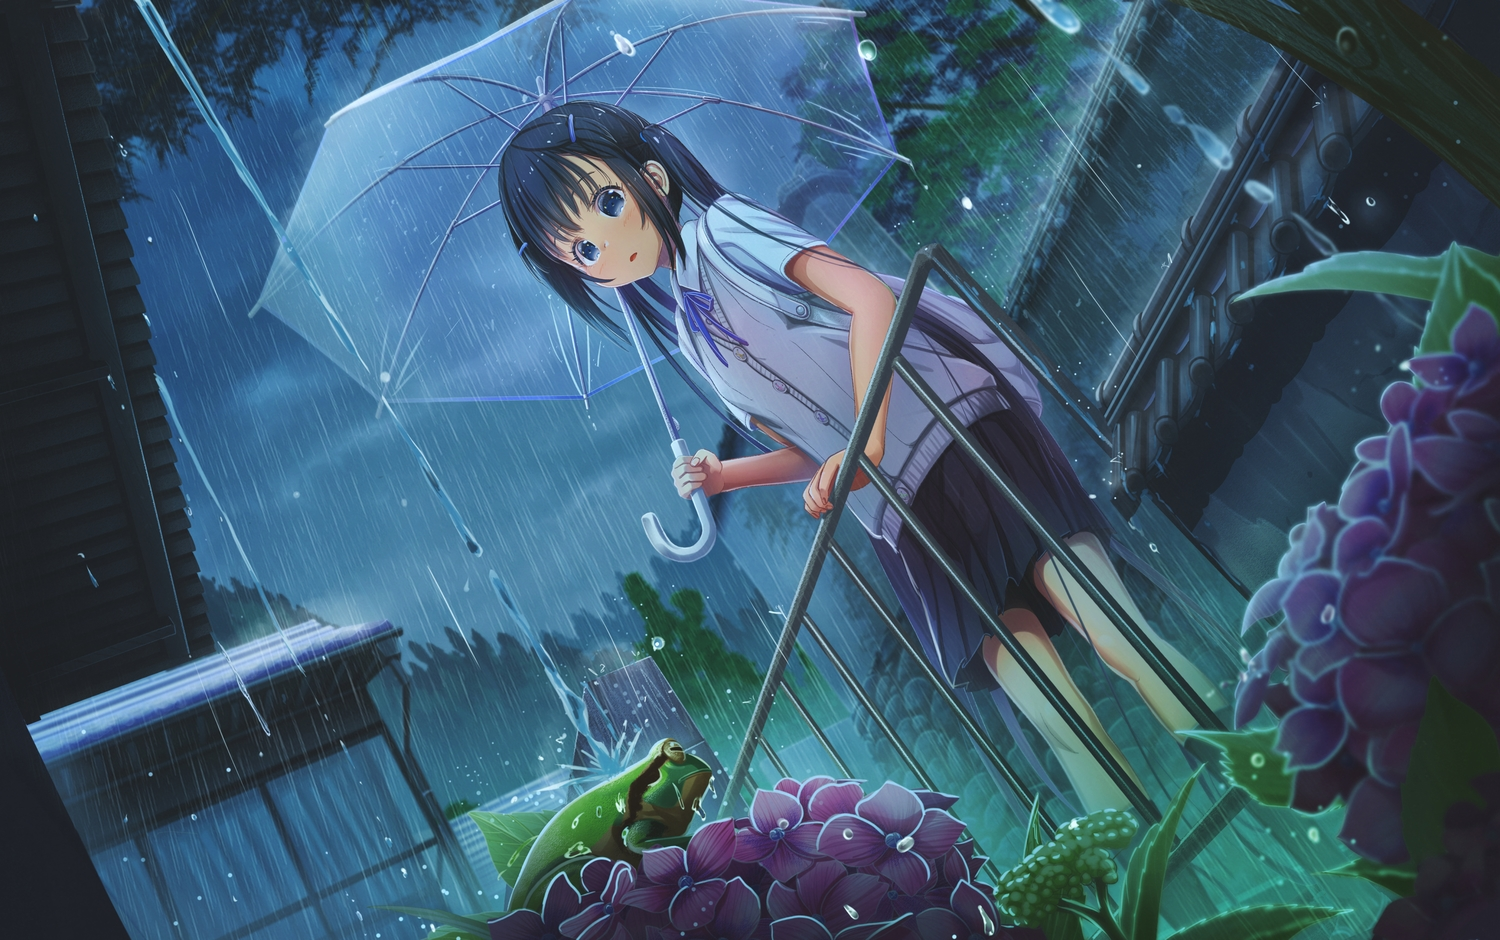 abo_(kawatasyunnnosukesabu) animal black_hair blue_eyes building flowers frog long_hair original rain sky tree twintails umbrella water